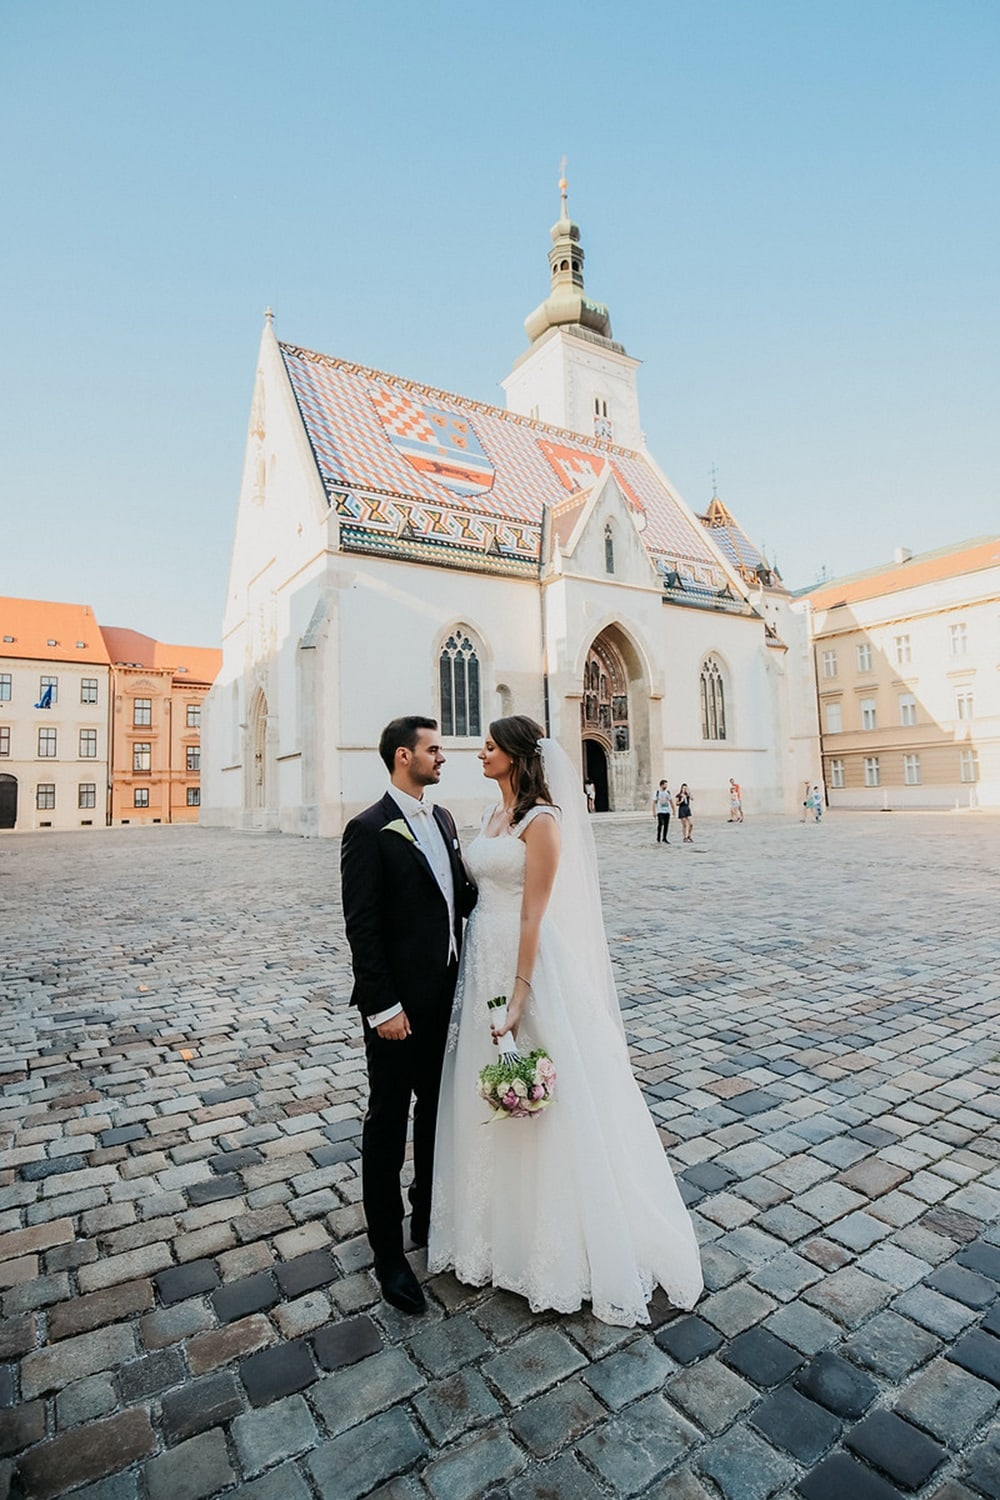 Dreamtime Events Croatia - Wedding & Event Planner - valued member of Weddings Abroad Guide's Supplier Directory